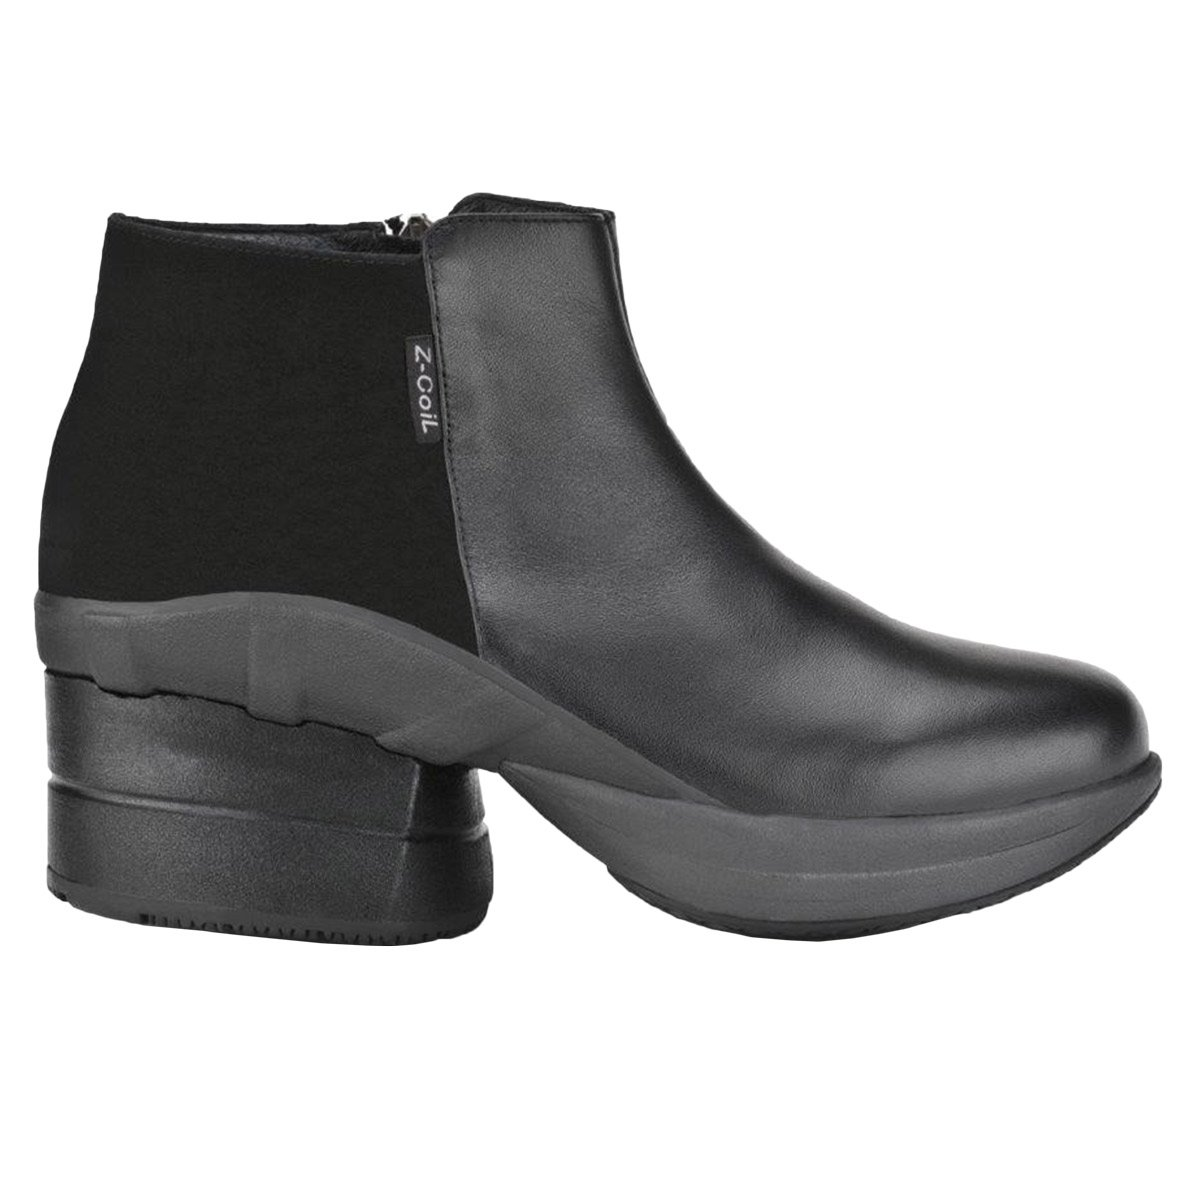 Z-CoiL Pain Relief Footwear Women's Olivia Black Boots 9 E US by Z-CoiL (Image #2)